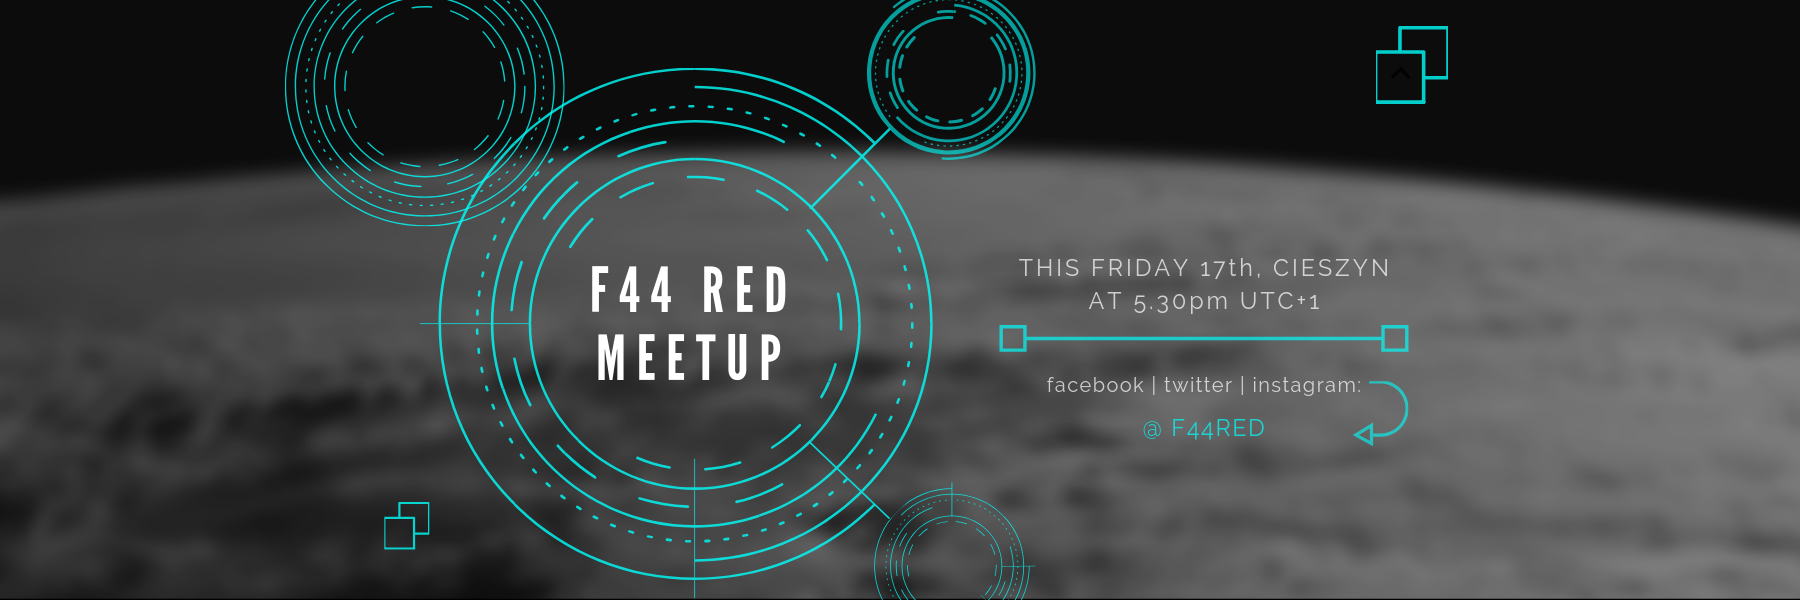 F44 Red Meetup Site